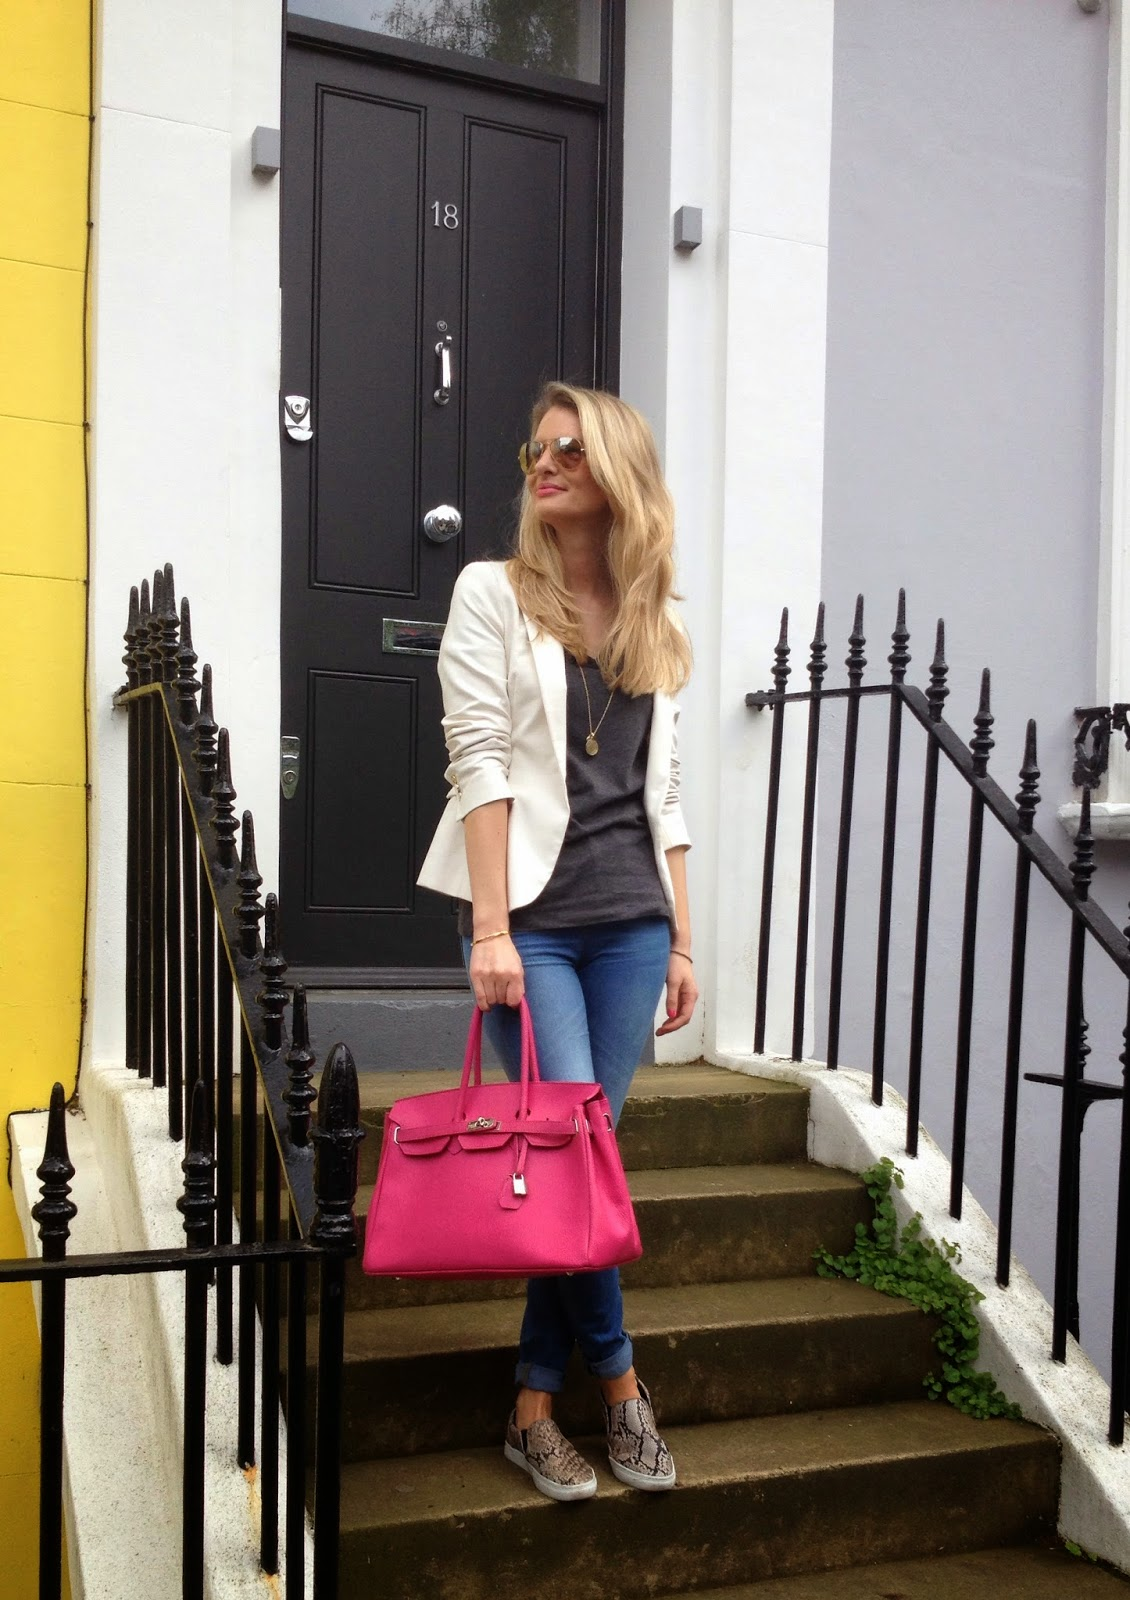 Notting hill, notting hill houses, white blazer, asos, asos jeans, skinny jeans, plimsolls, slipons, kelly bag, pink bag, pink oversize bag, hm, monica vinader, chrissabella, street style, london fashion bloger, look book 2014